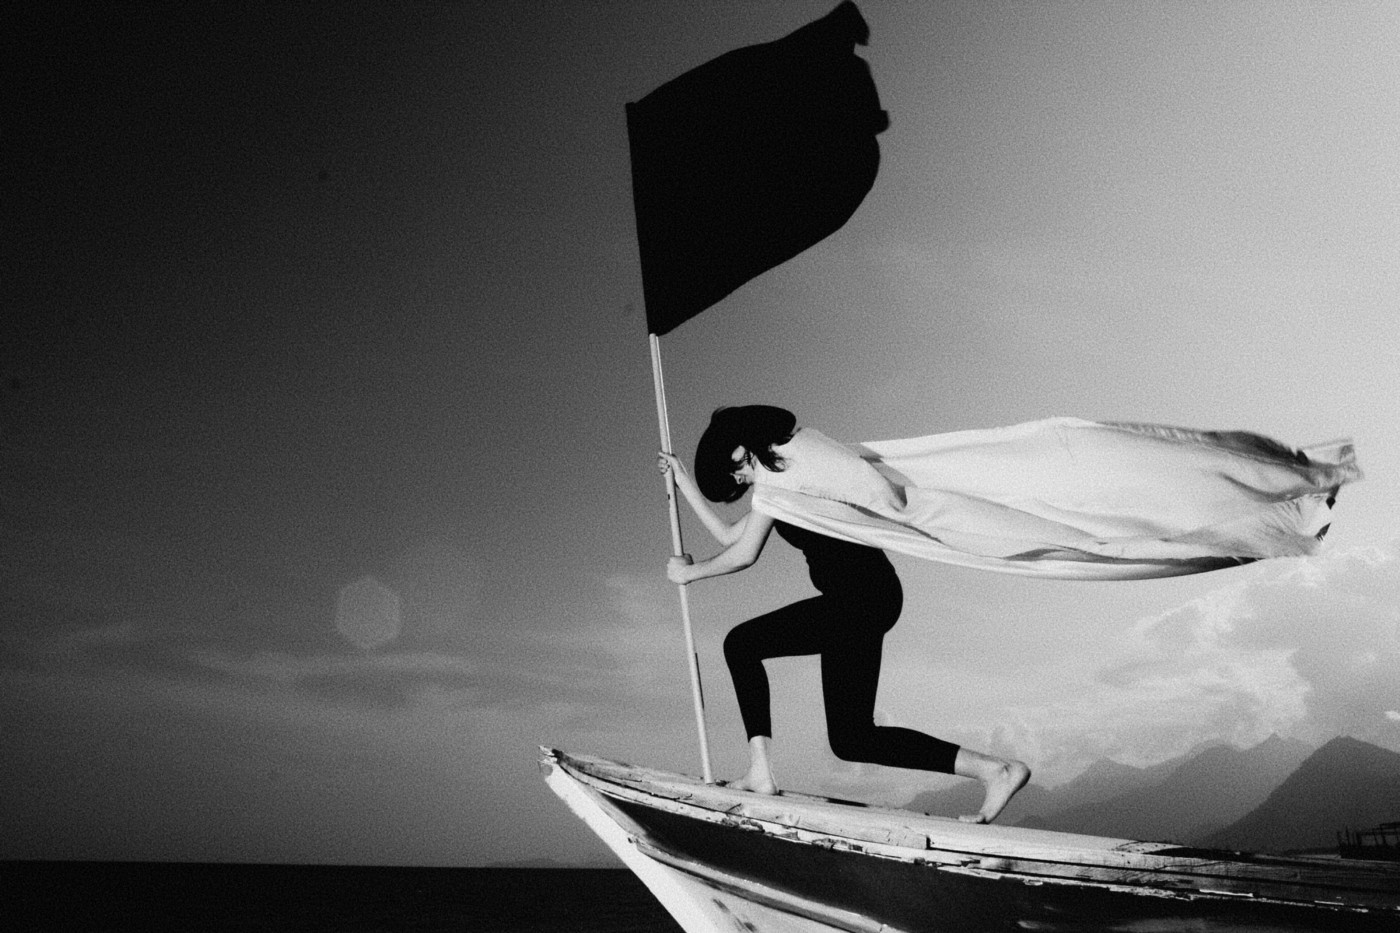 You have to put yourself out there to create a movement. Wave a flag. Stand out. Stand on the prow.